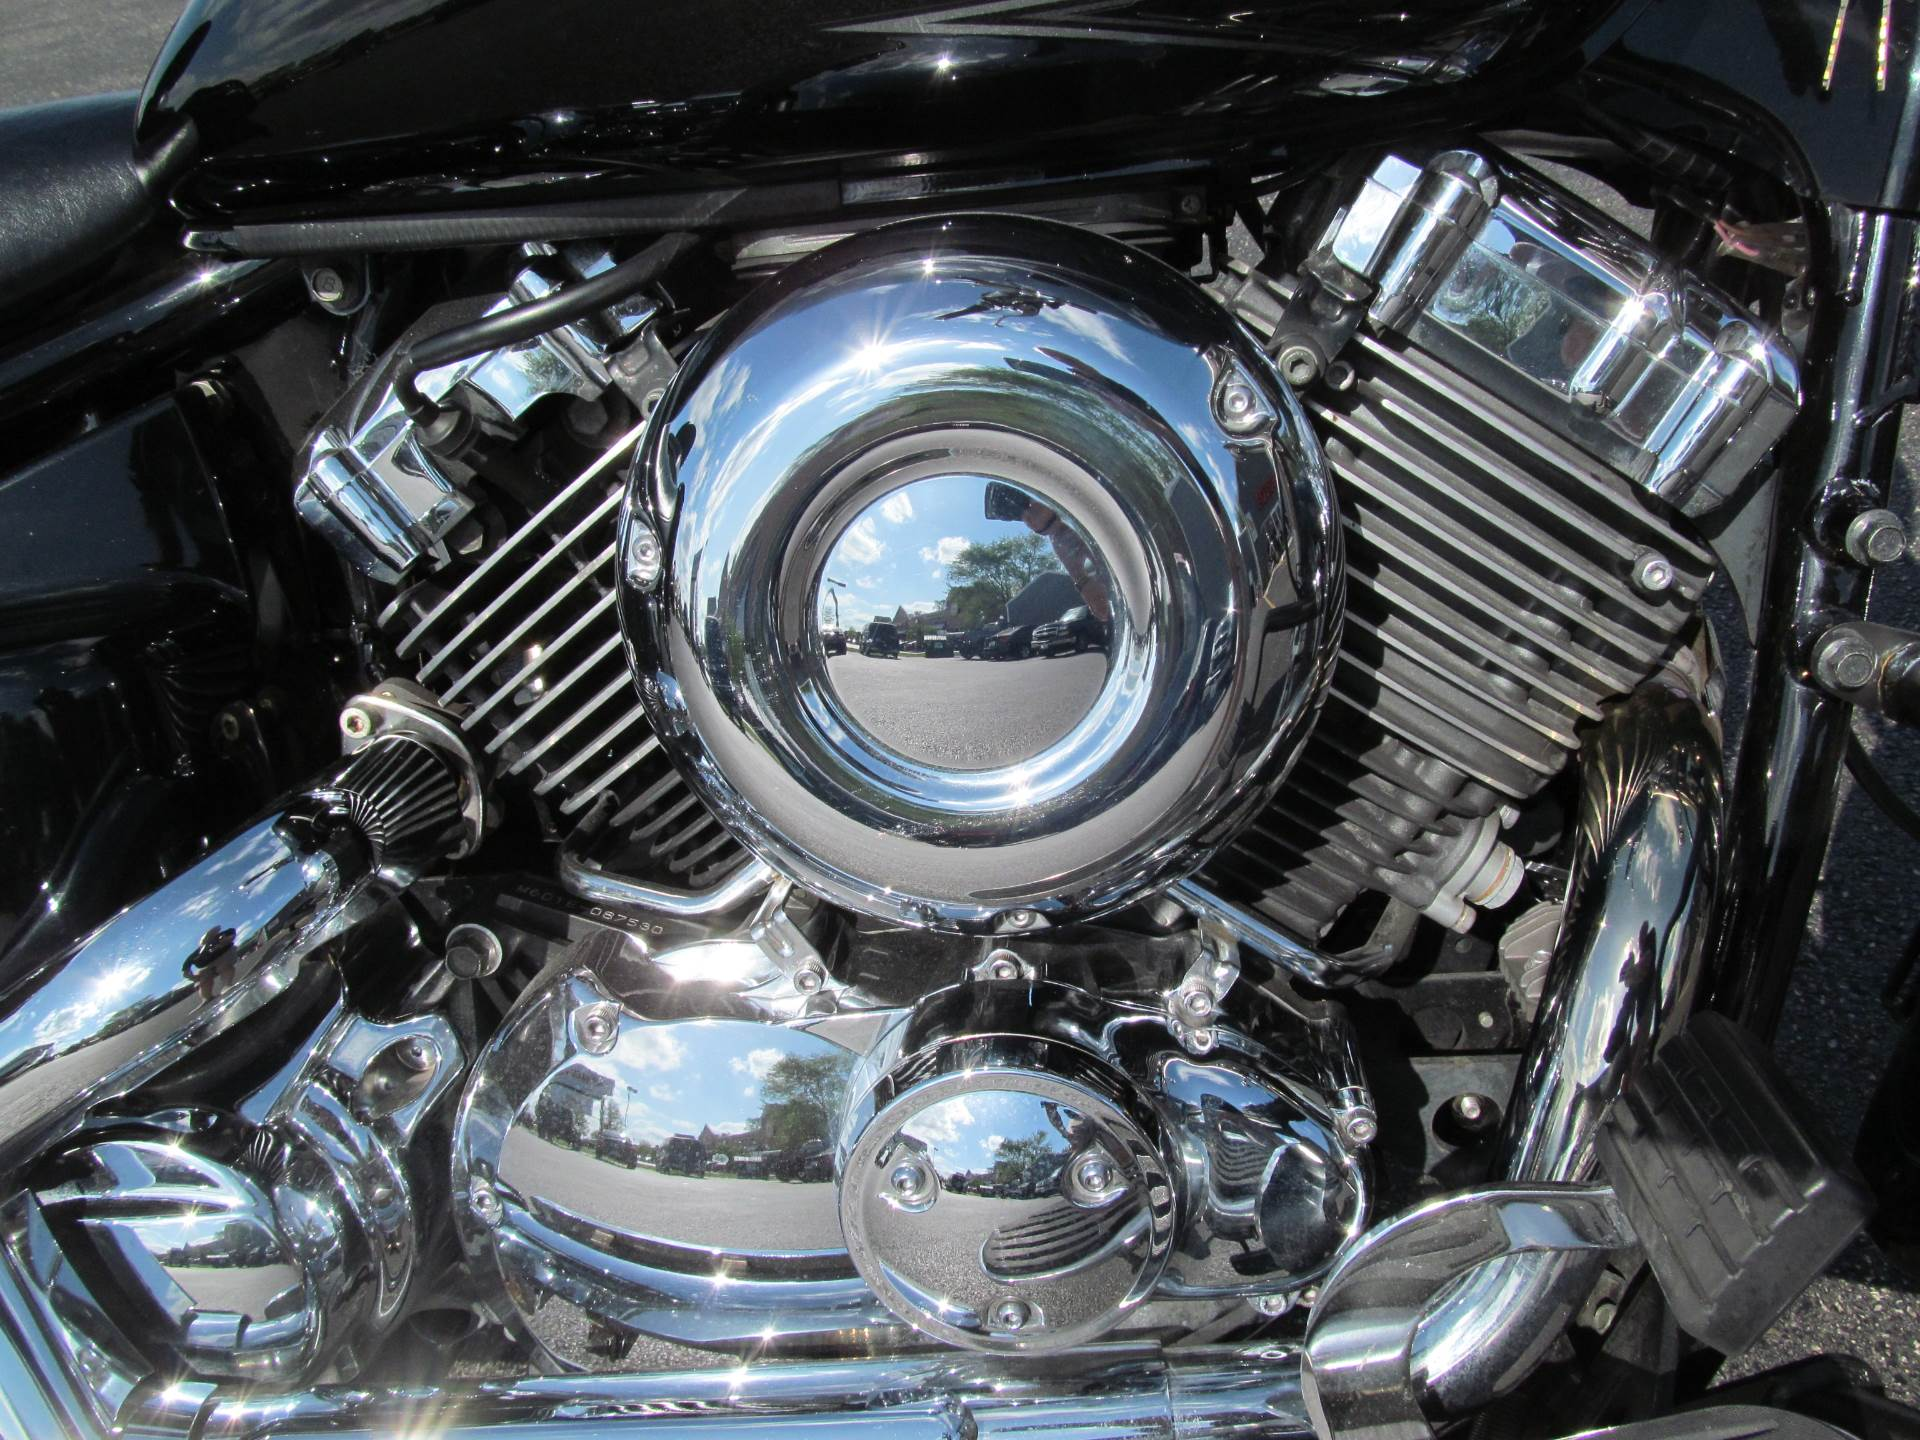 2004 Yamaha V Star 650 in Crystal Lake, Illinois